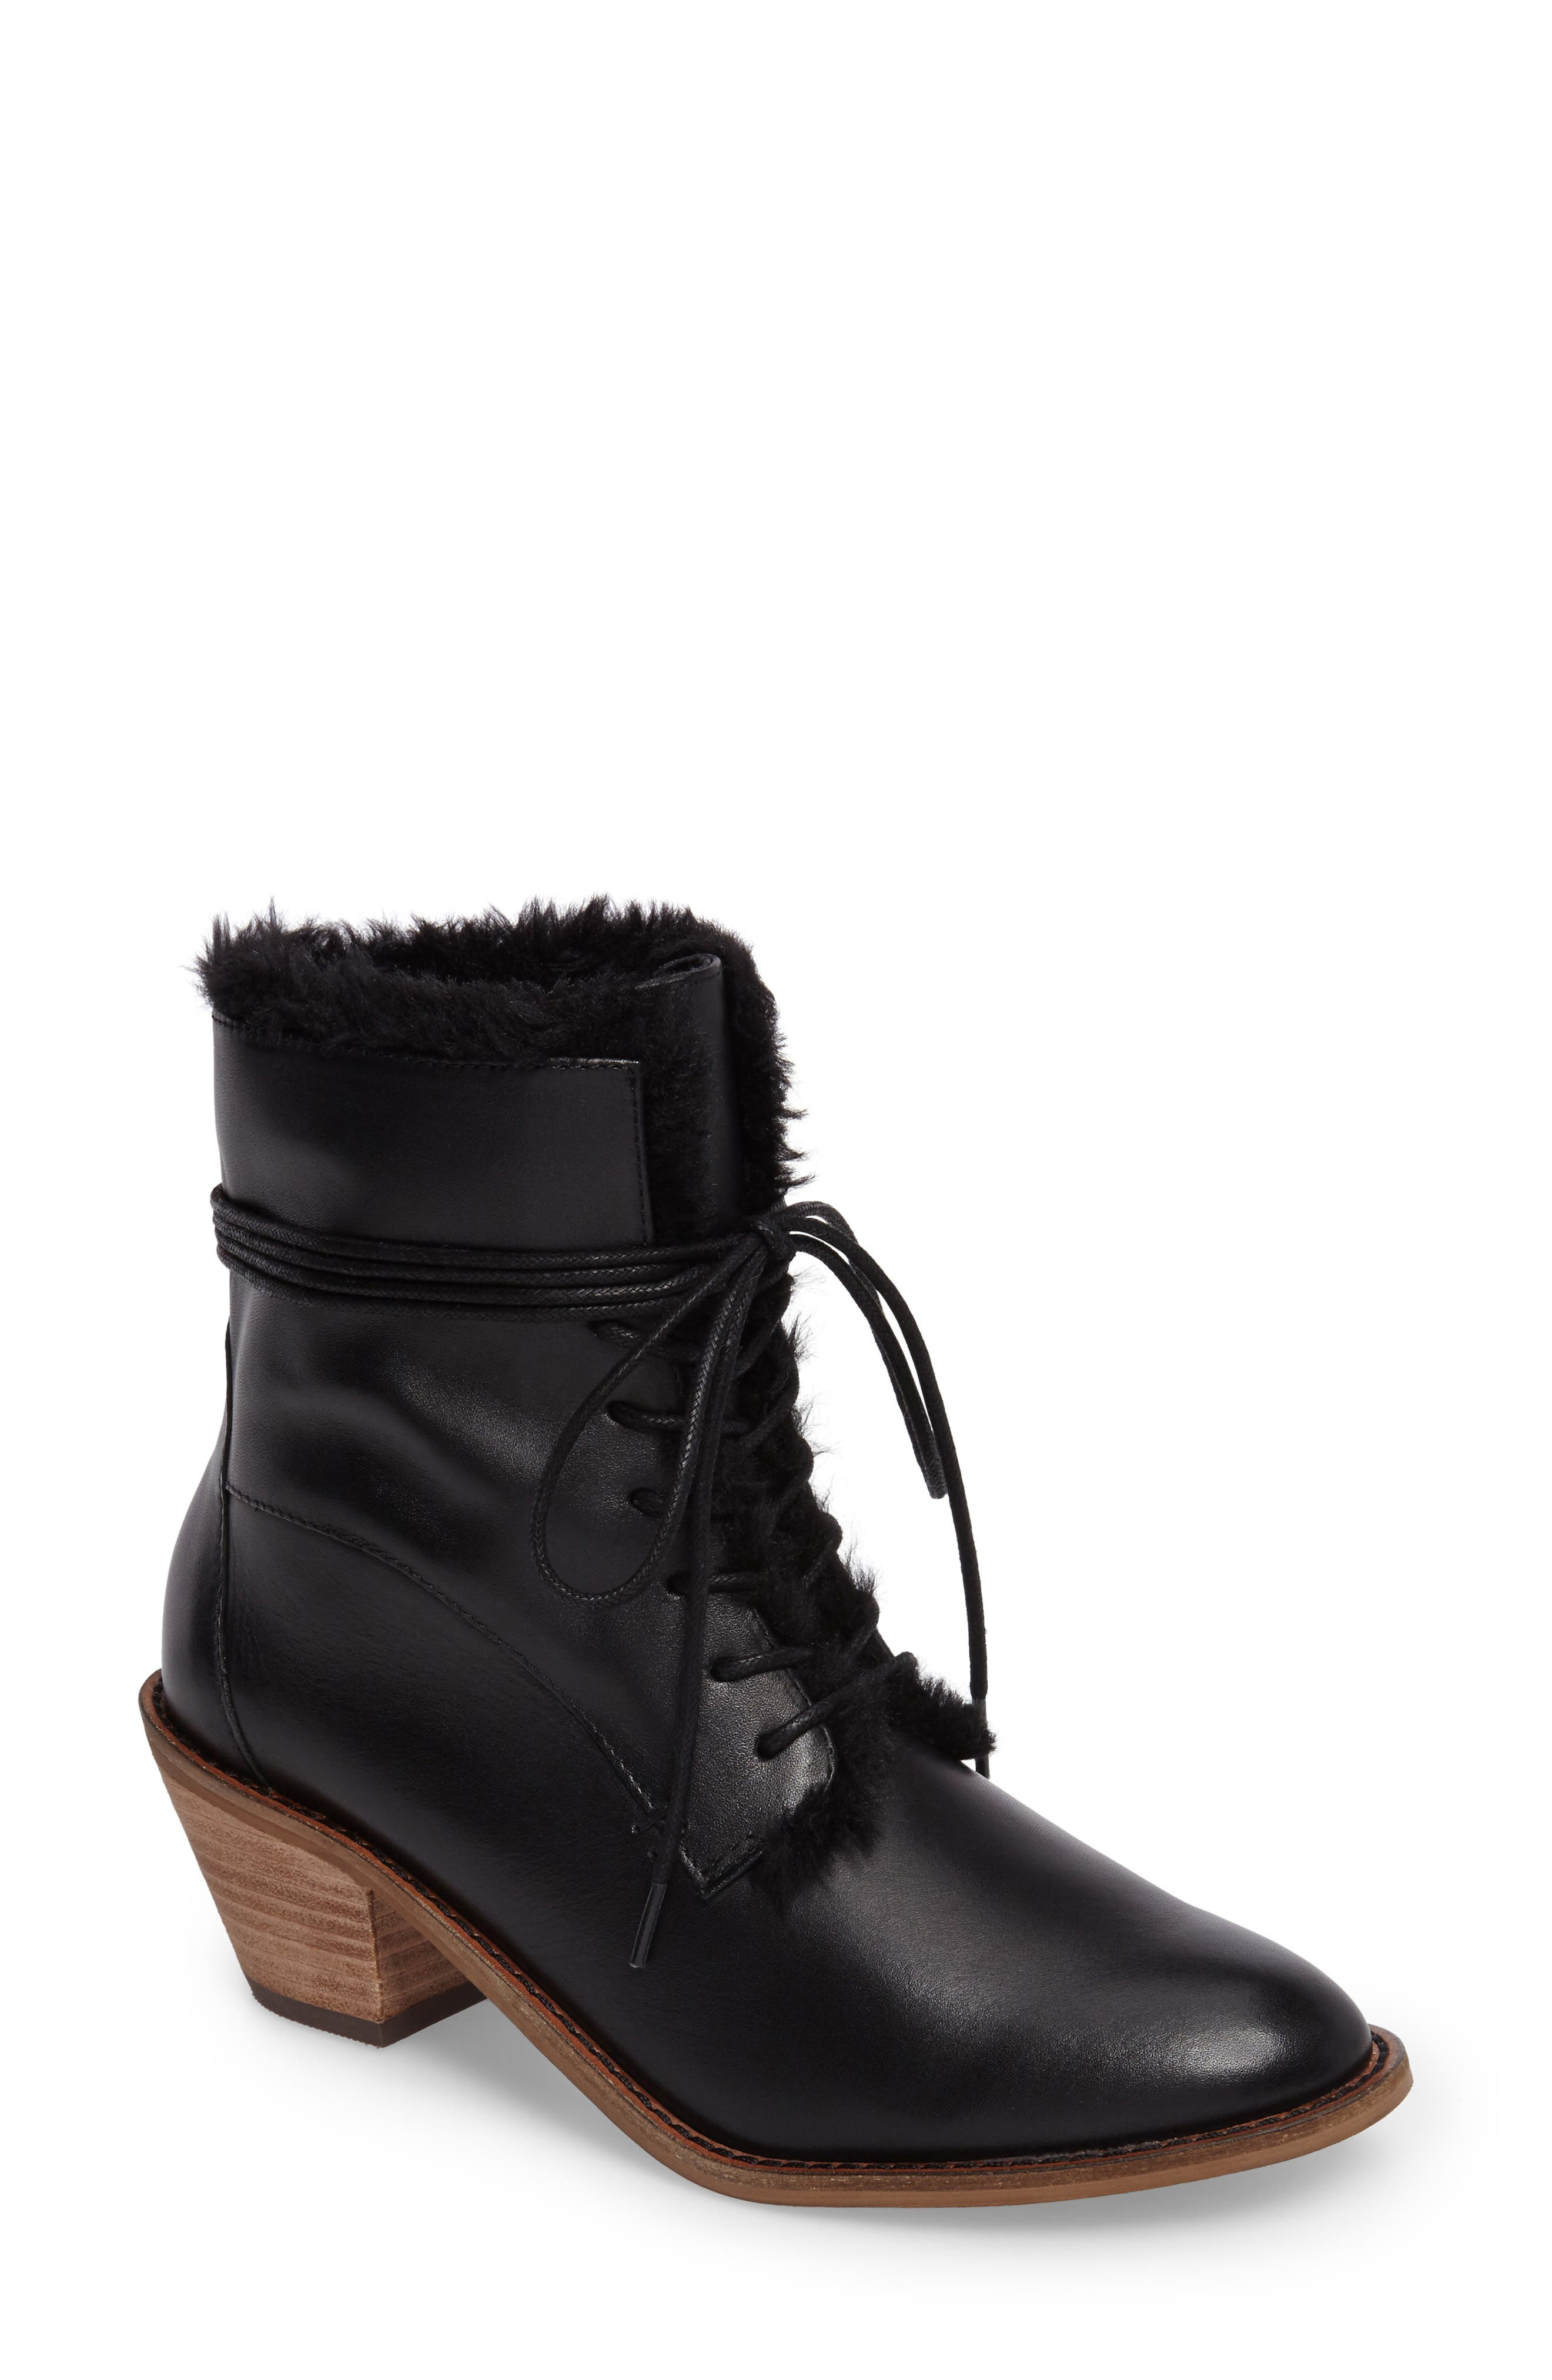 Main Image - Kelsi Dagger Brooklyn Kingsdale Lace-Up Bootie (Women)